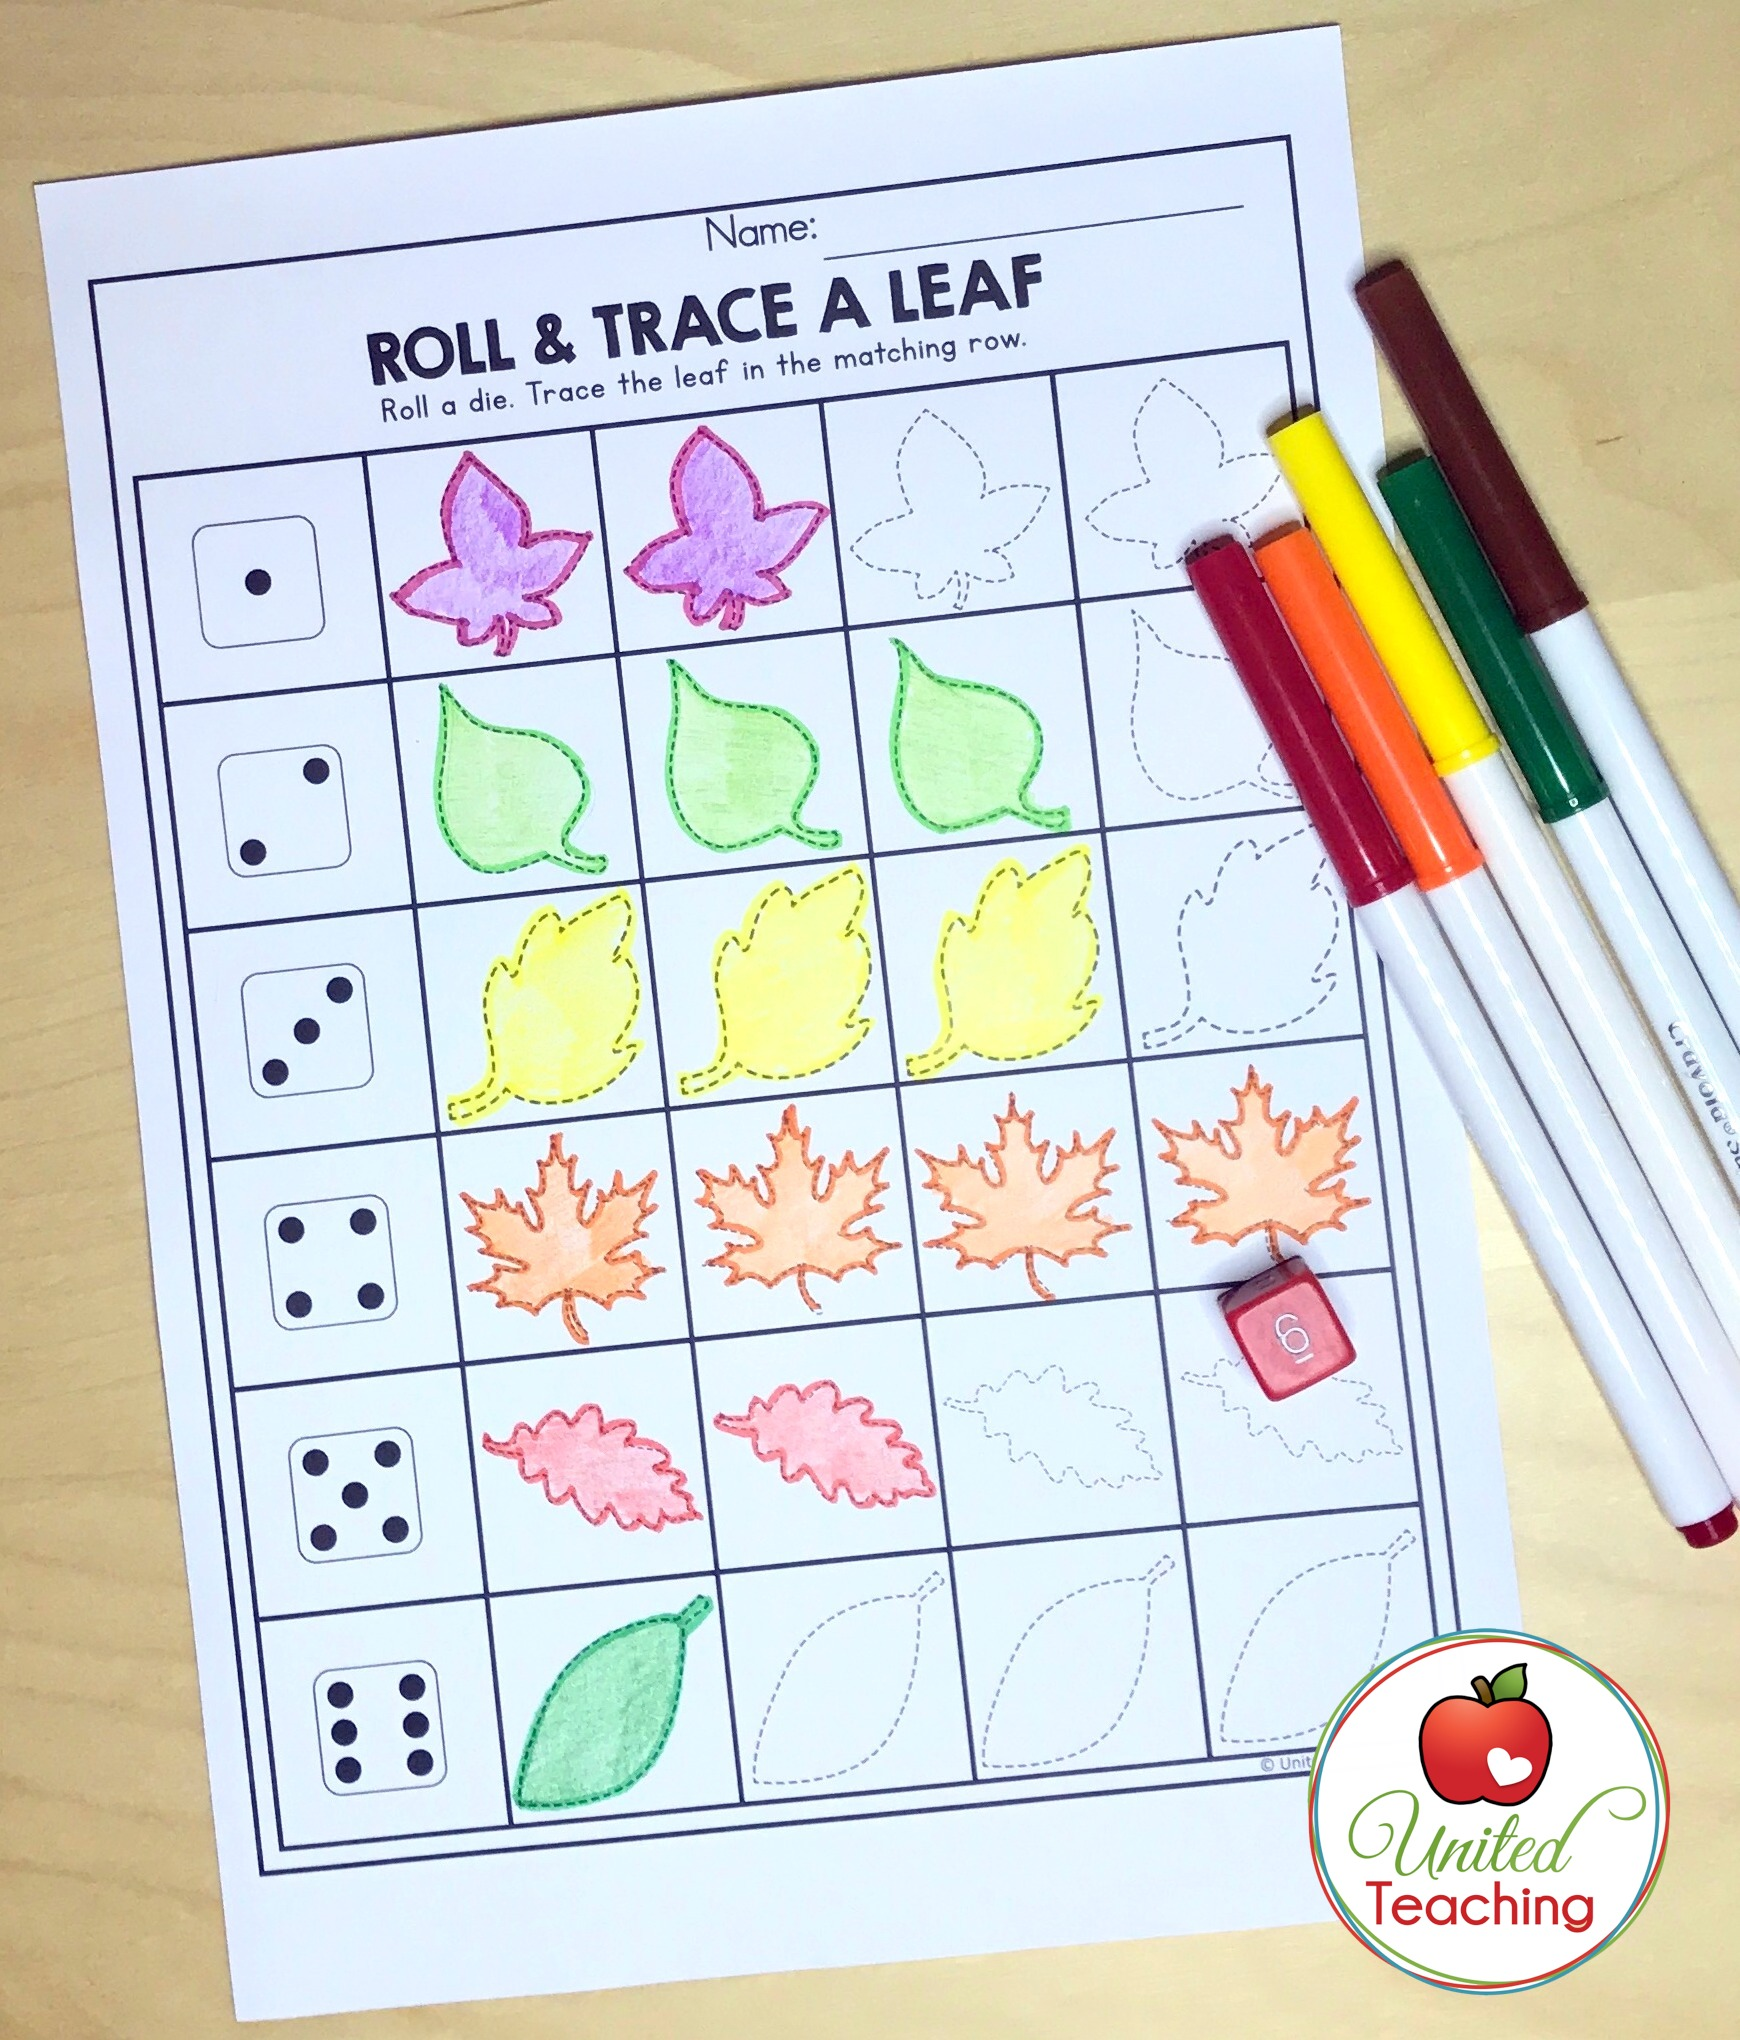 Roll and Trace a Leaf